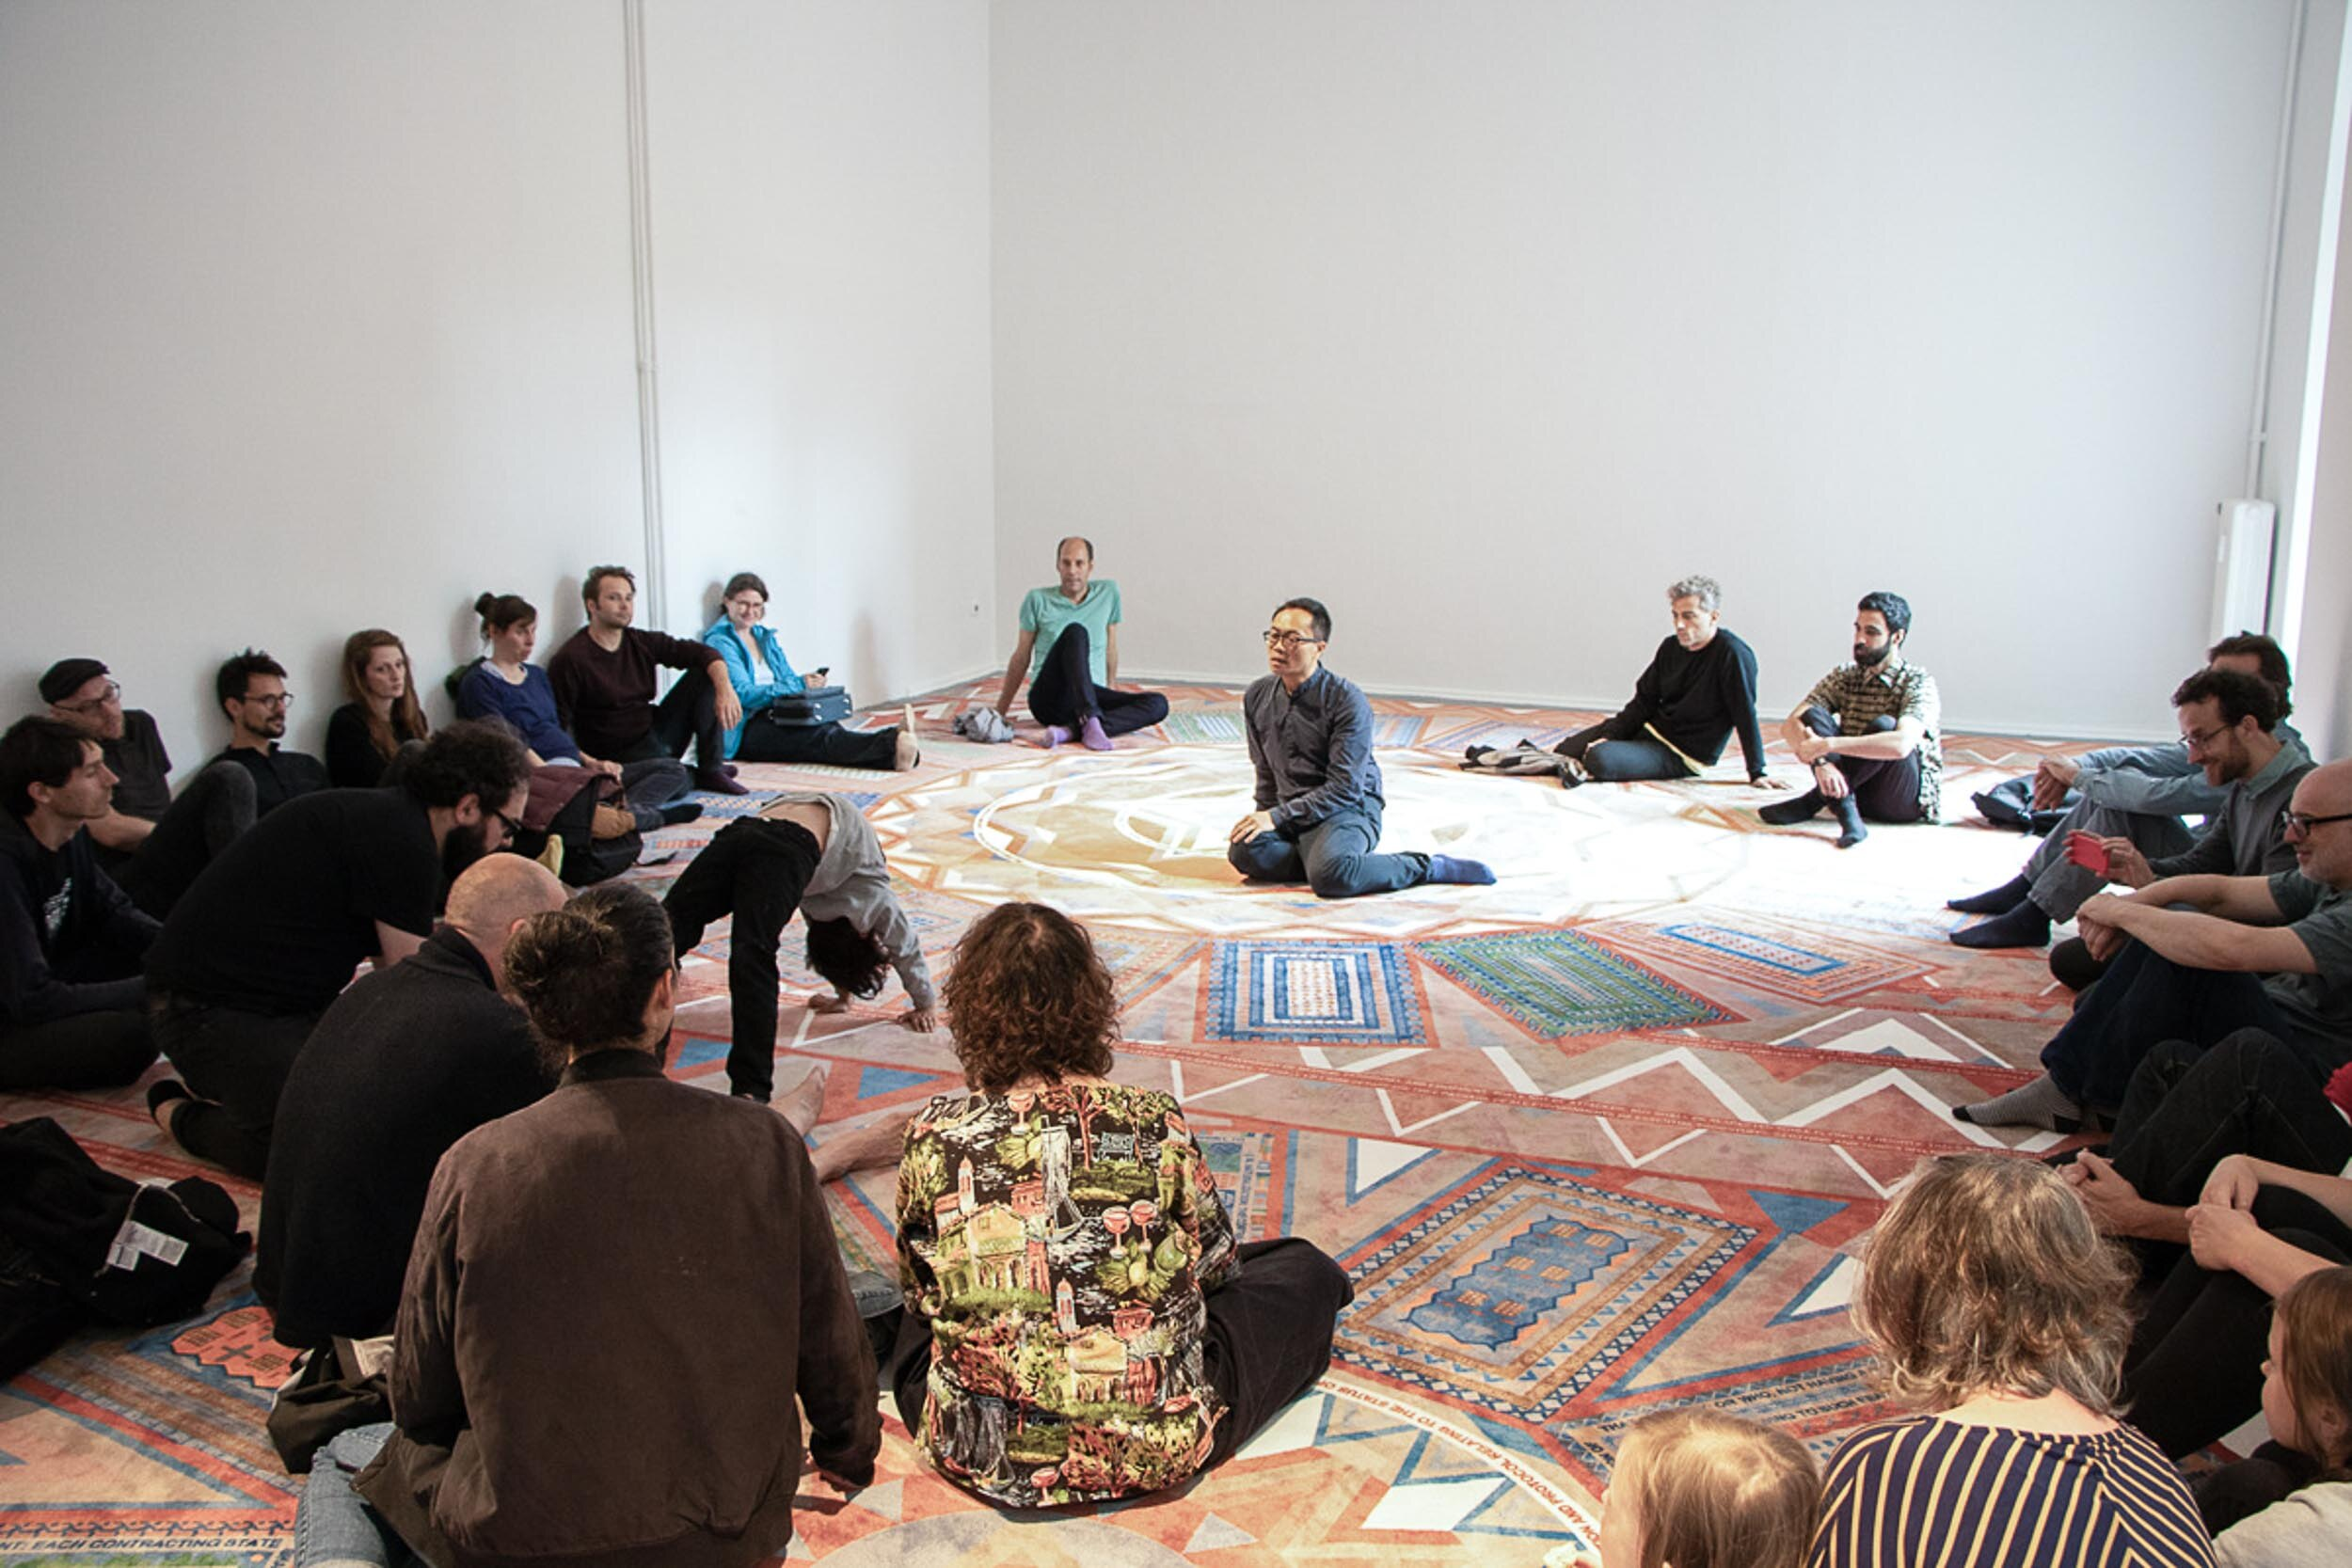 Anh-Linh Ngo with visitors on Manuel Herz' Rights on Carpet during a tour through the exhibition. Photo: Simone Gilges, © ifa